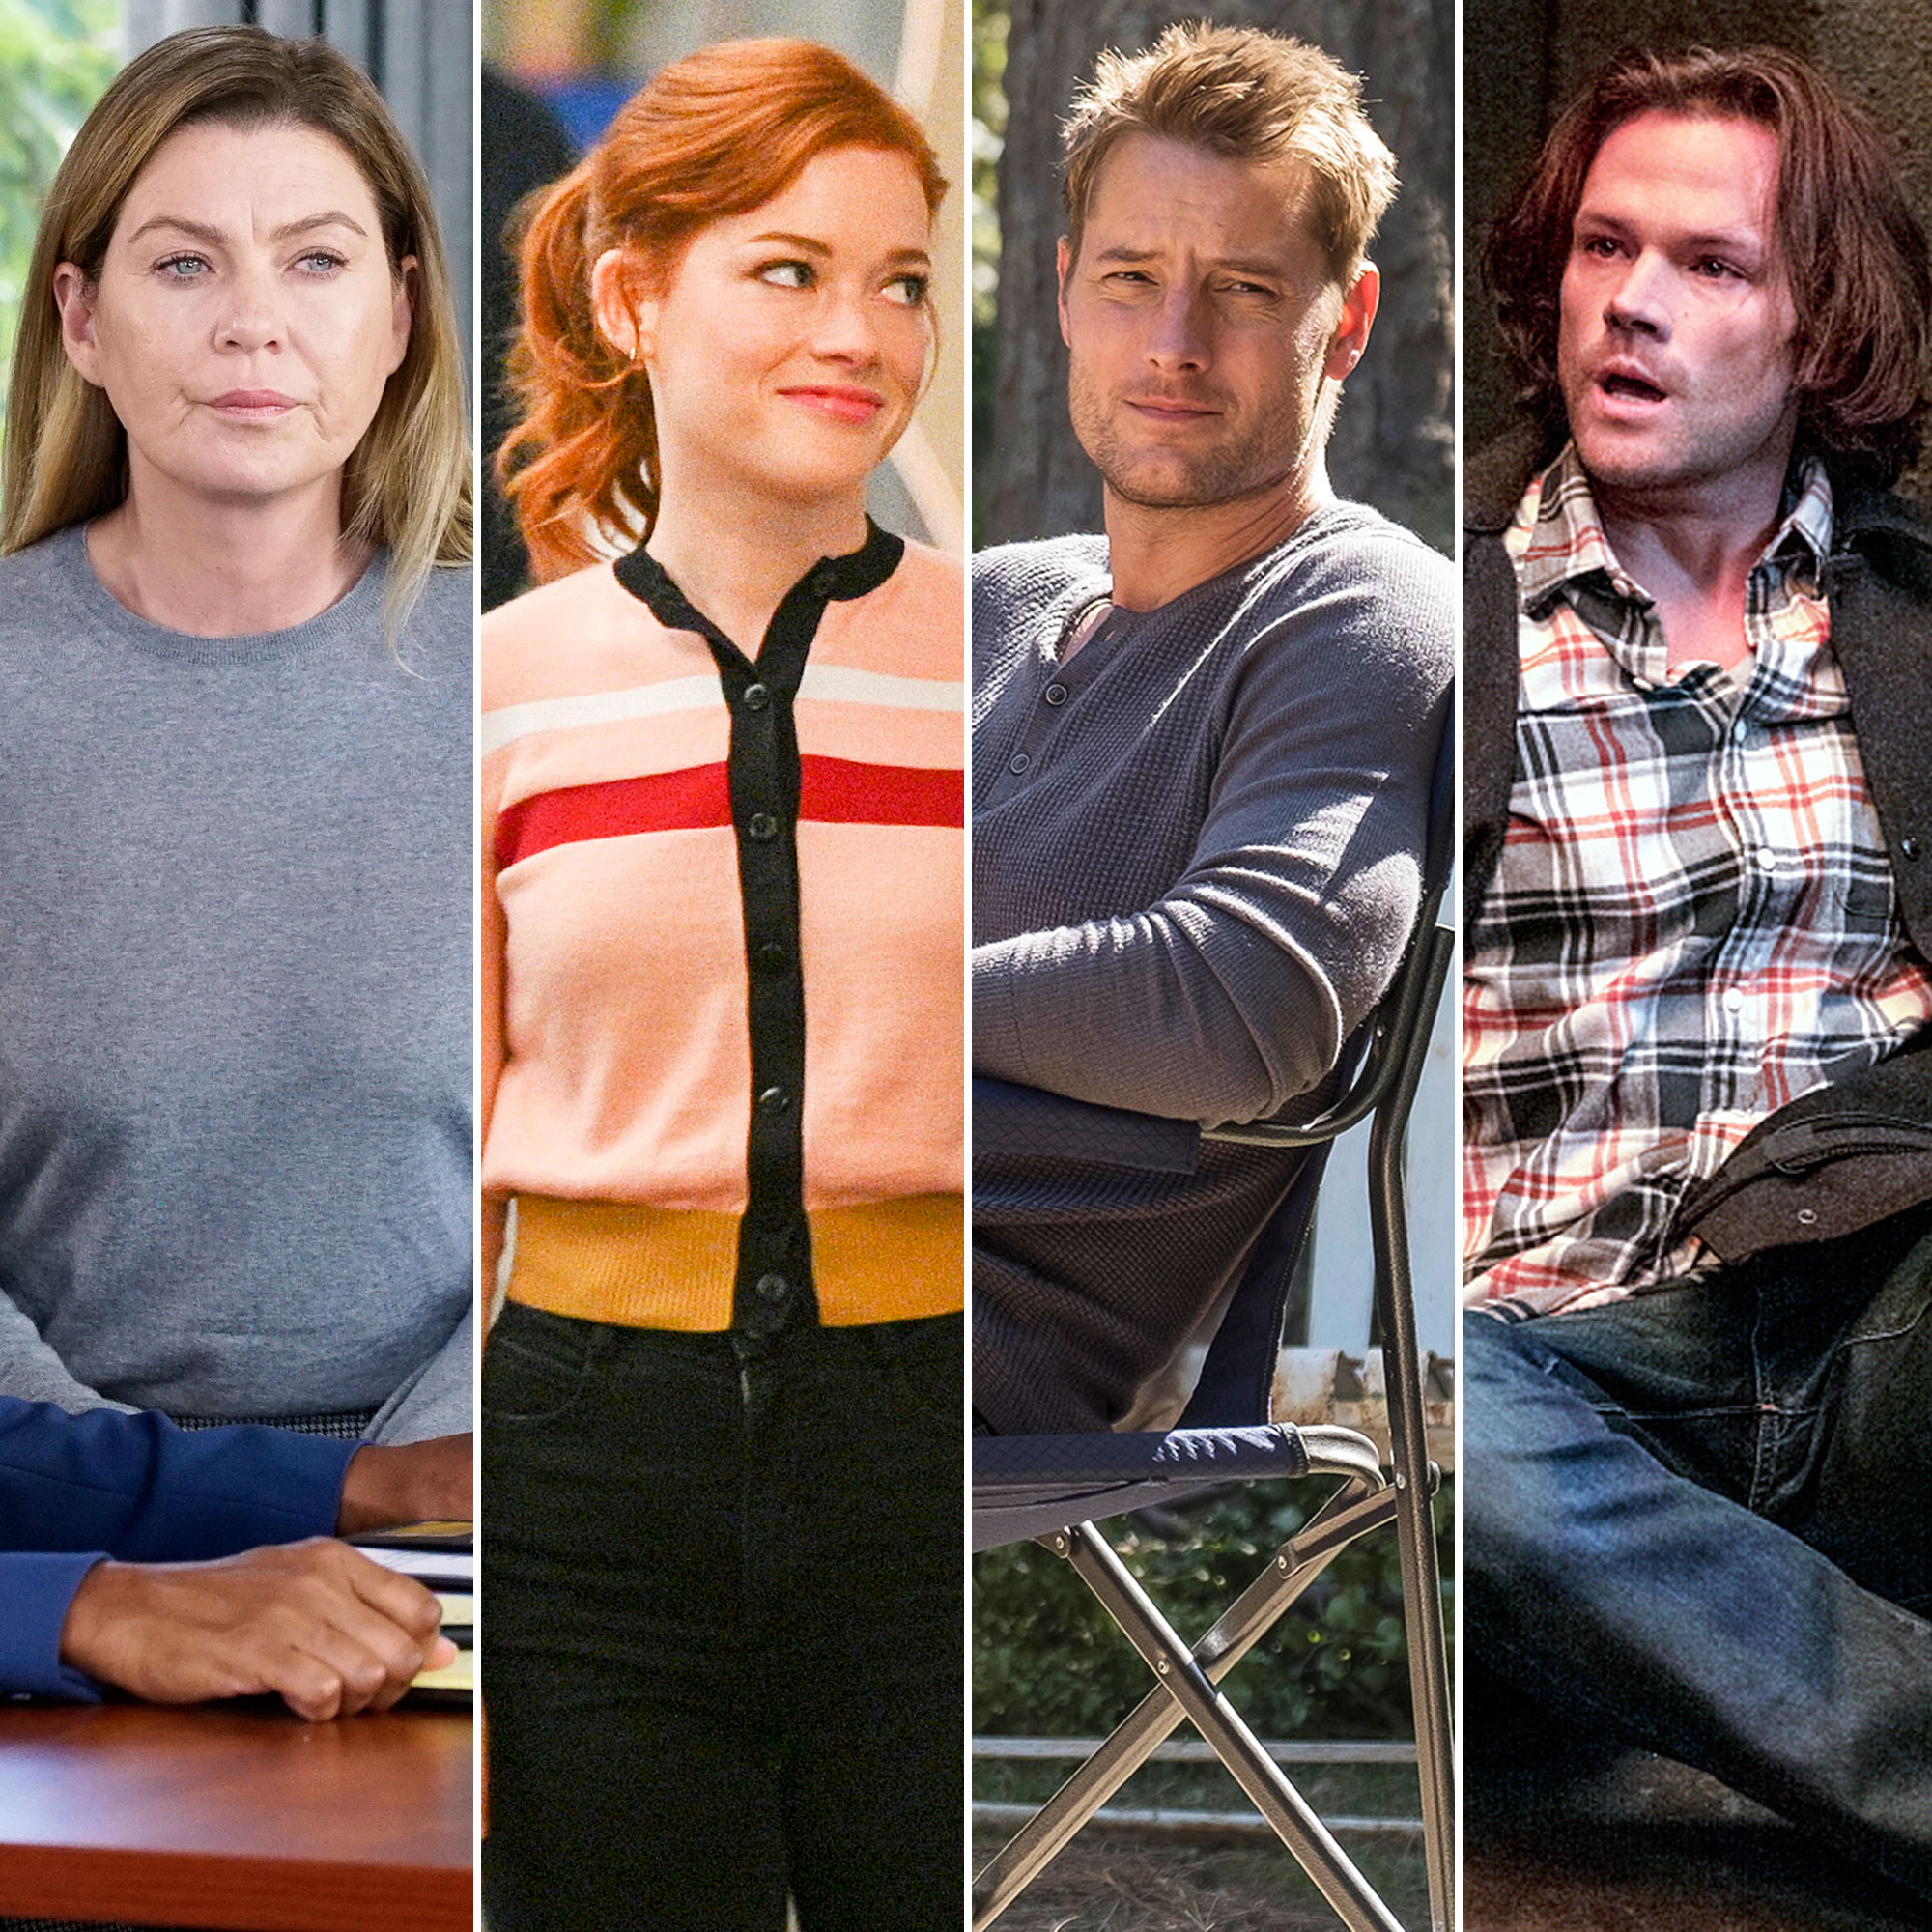 Winter Tv 2020 Schedule: Premiere Dates For New, Returning Shows within Winter 2020 Tv Guide Premier Calendar